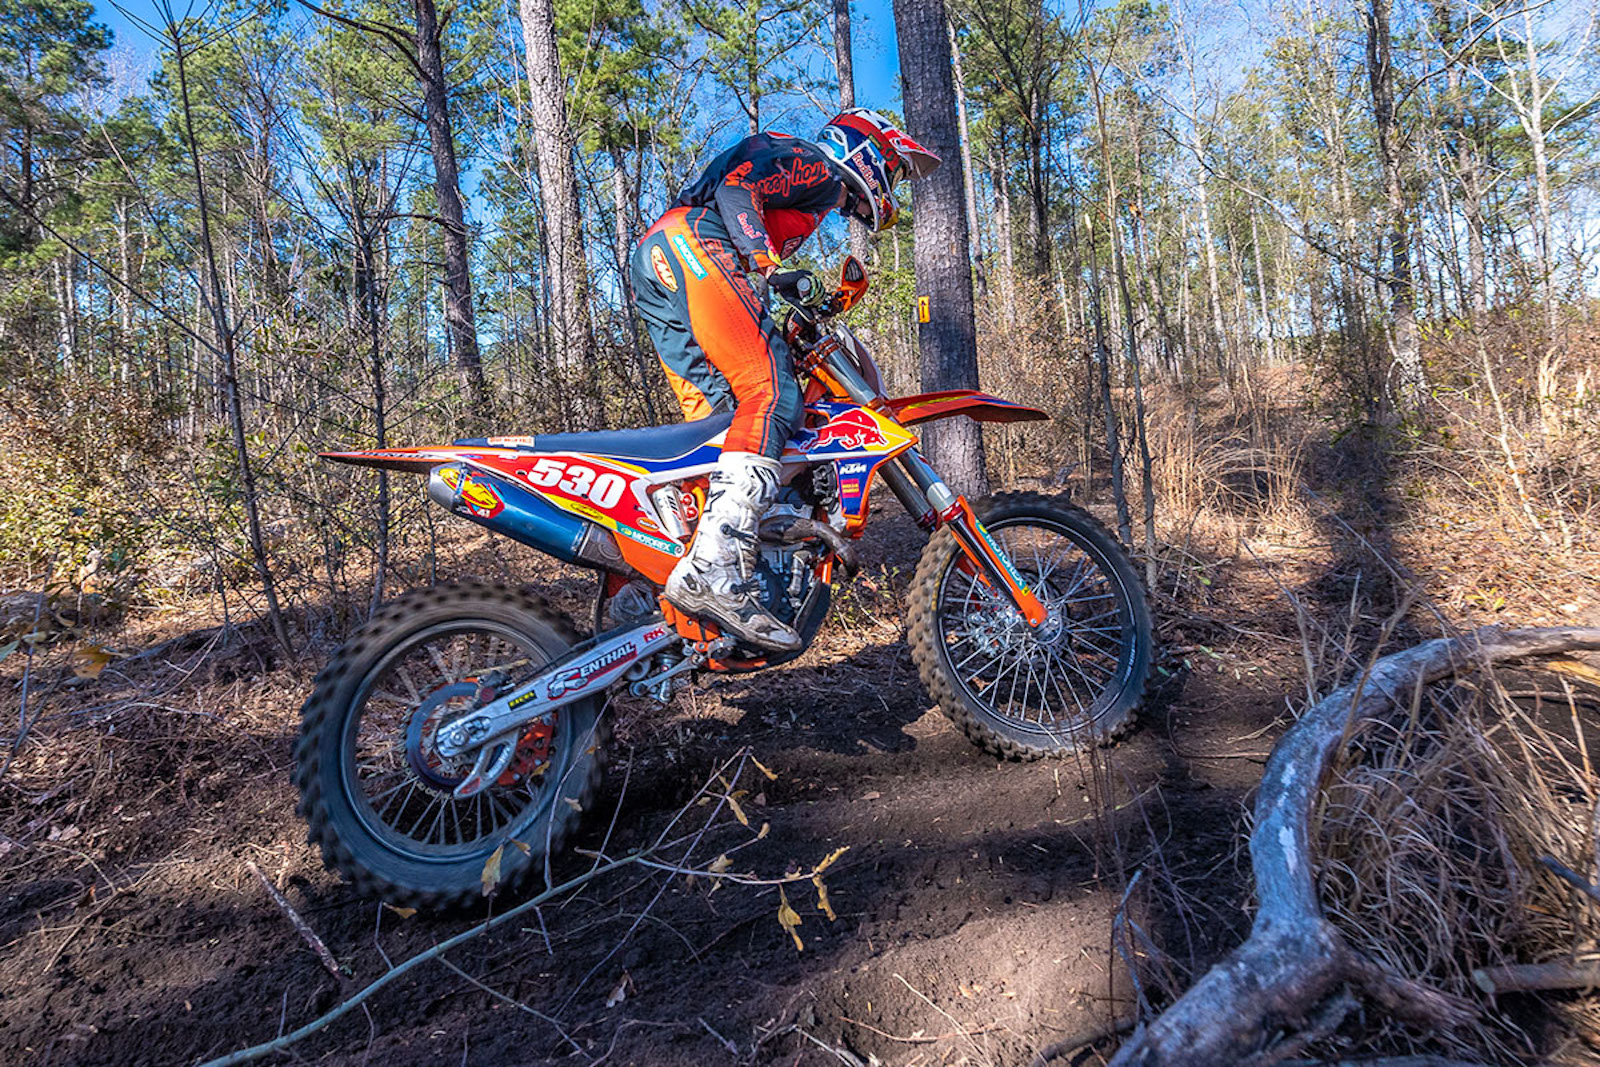 Ben Kelley takes opening National Enduro win of 2020 season at NEPG Sumter Enduro